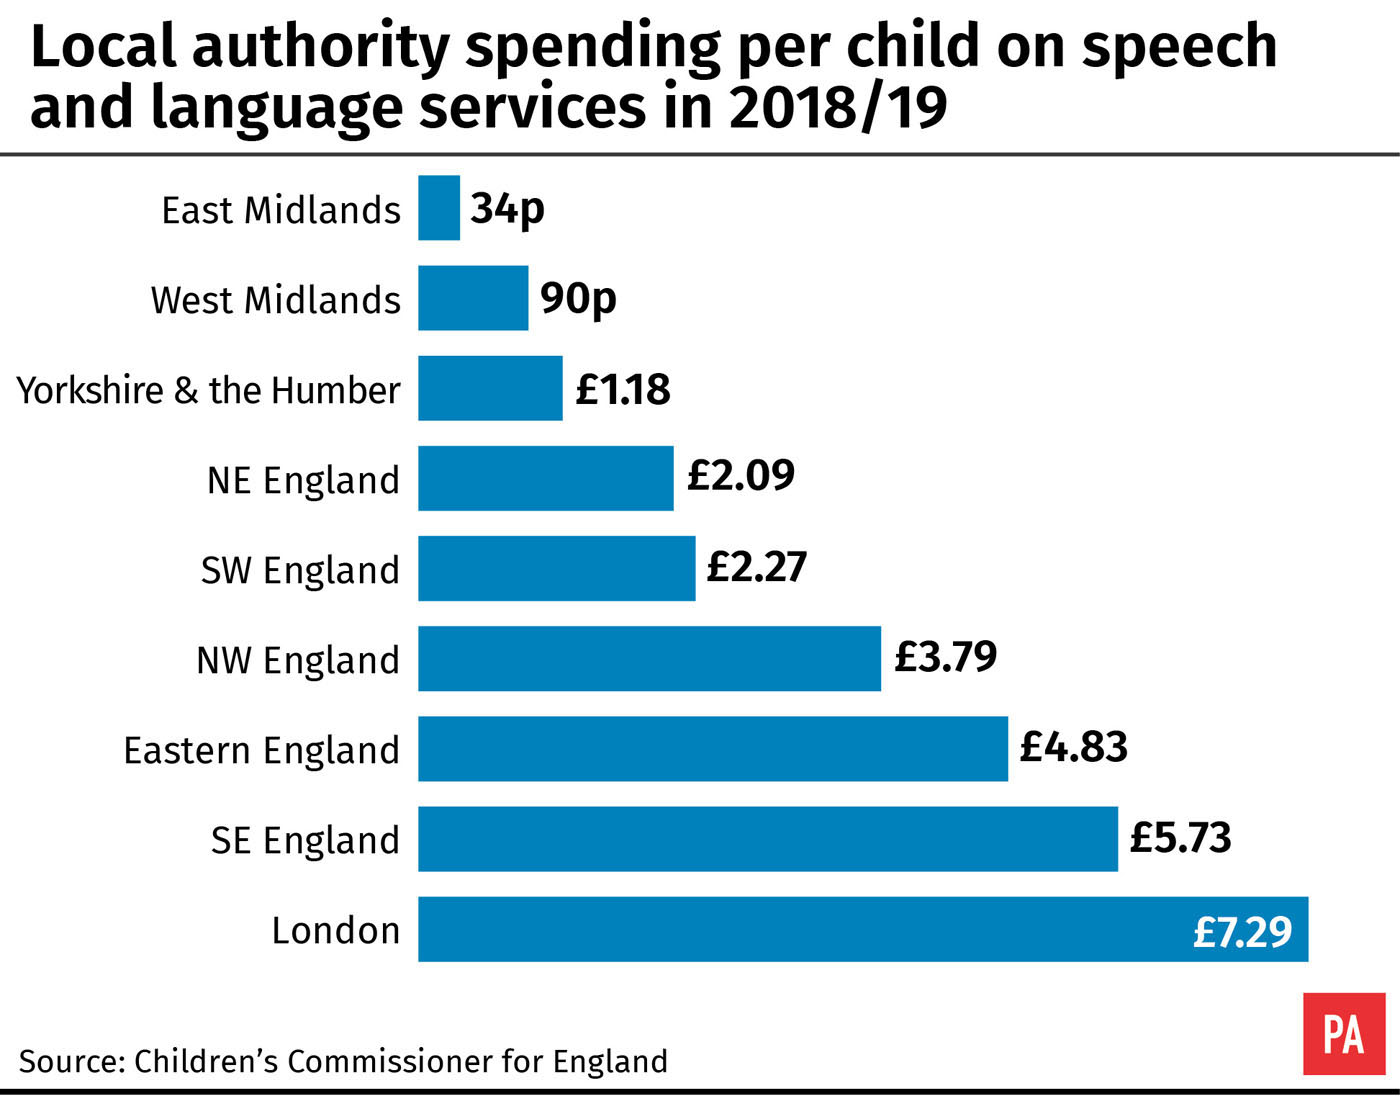 Local authority spending per child on speech and language services in 2018/19